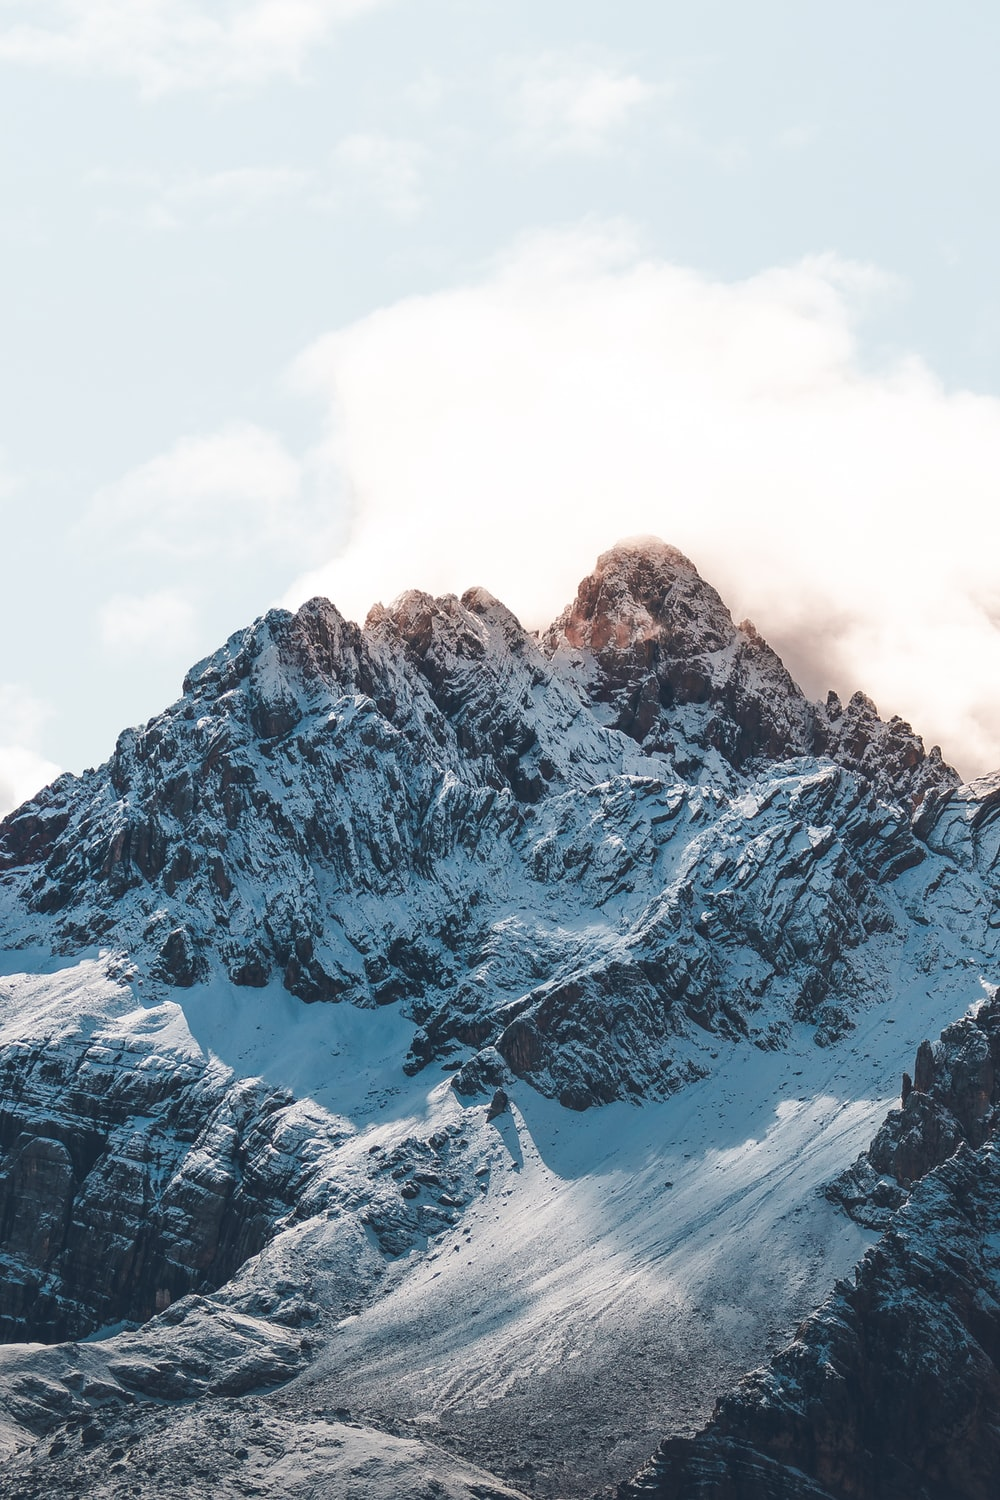 snow capped mountain during daytime